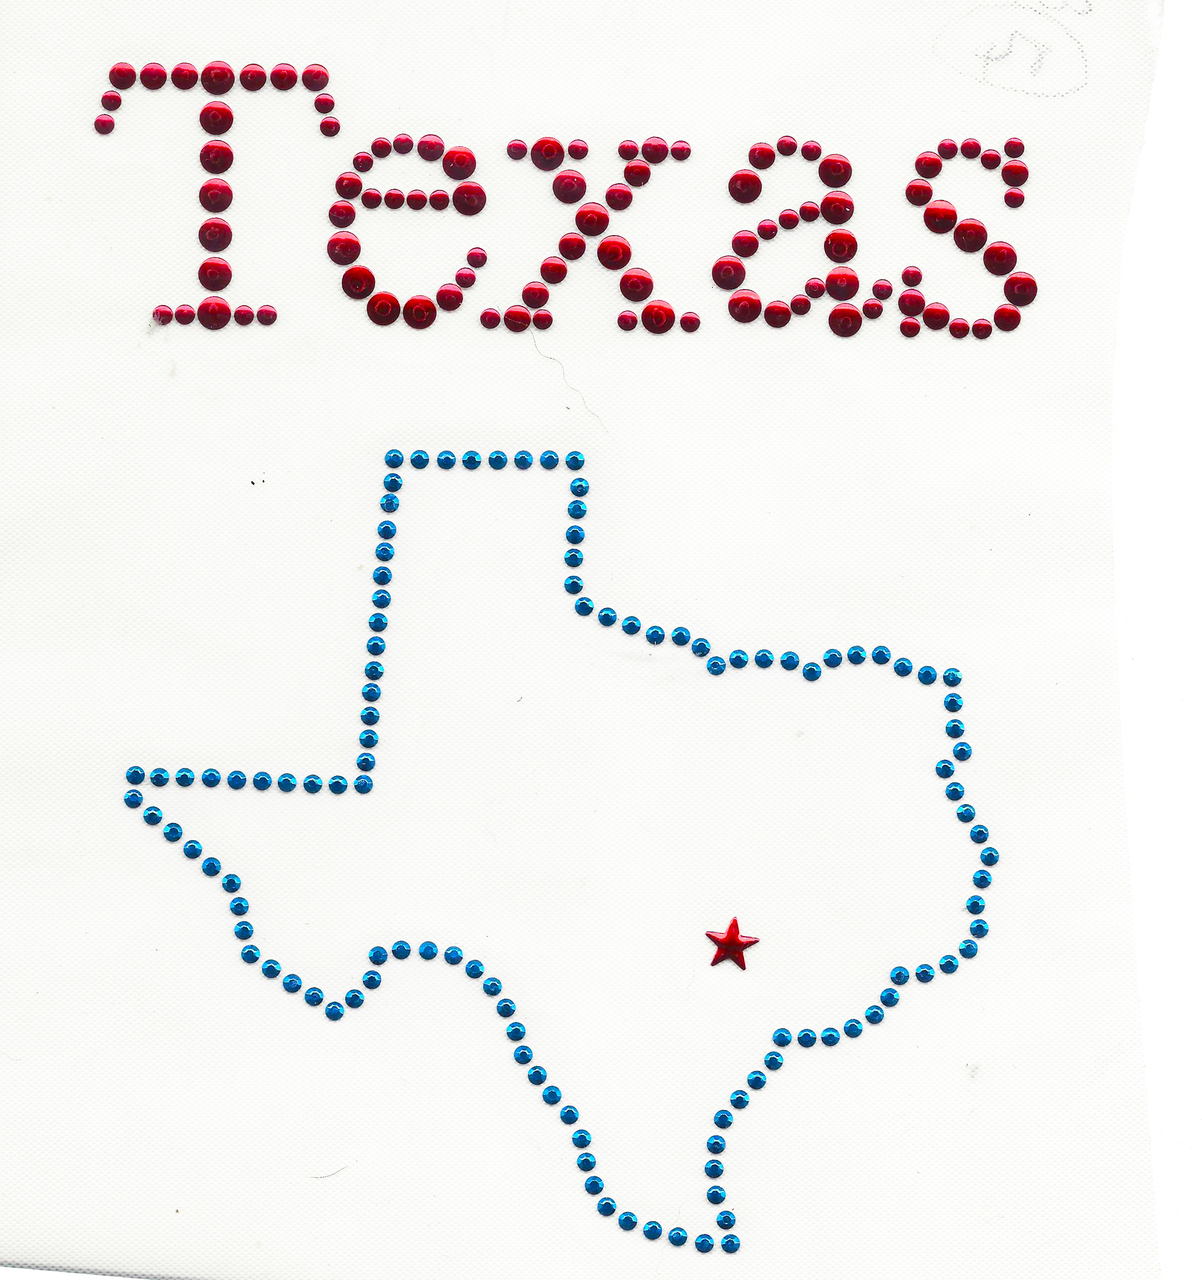 """Rhinestud Applique - Texas   Colors - RED BLUE   Measures 5 1/2"""" wide x 7"""" high  (139mm x 177mm)   Iron On or Heat Transfer   Item Pic is Scanned for accuracy, the studs and stones are much more vibrant to naked eye"""